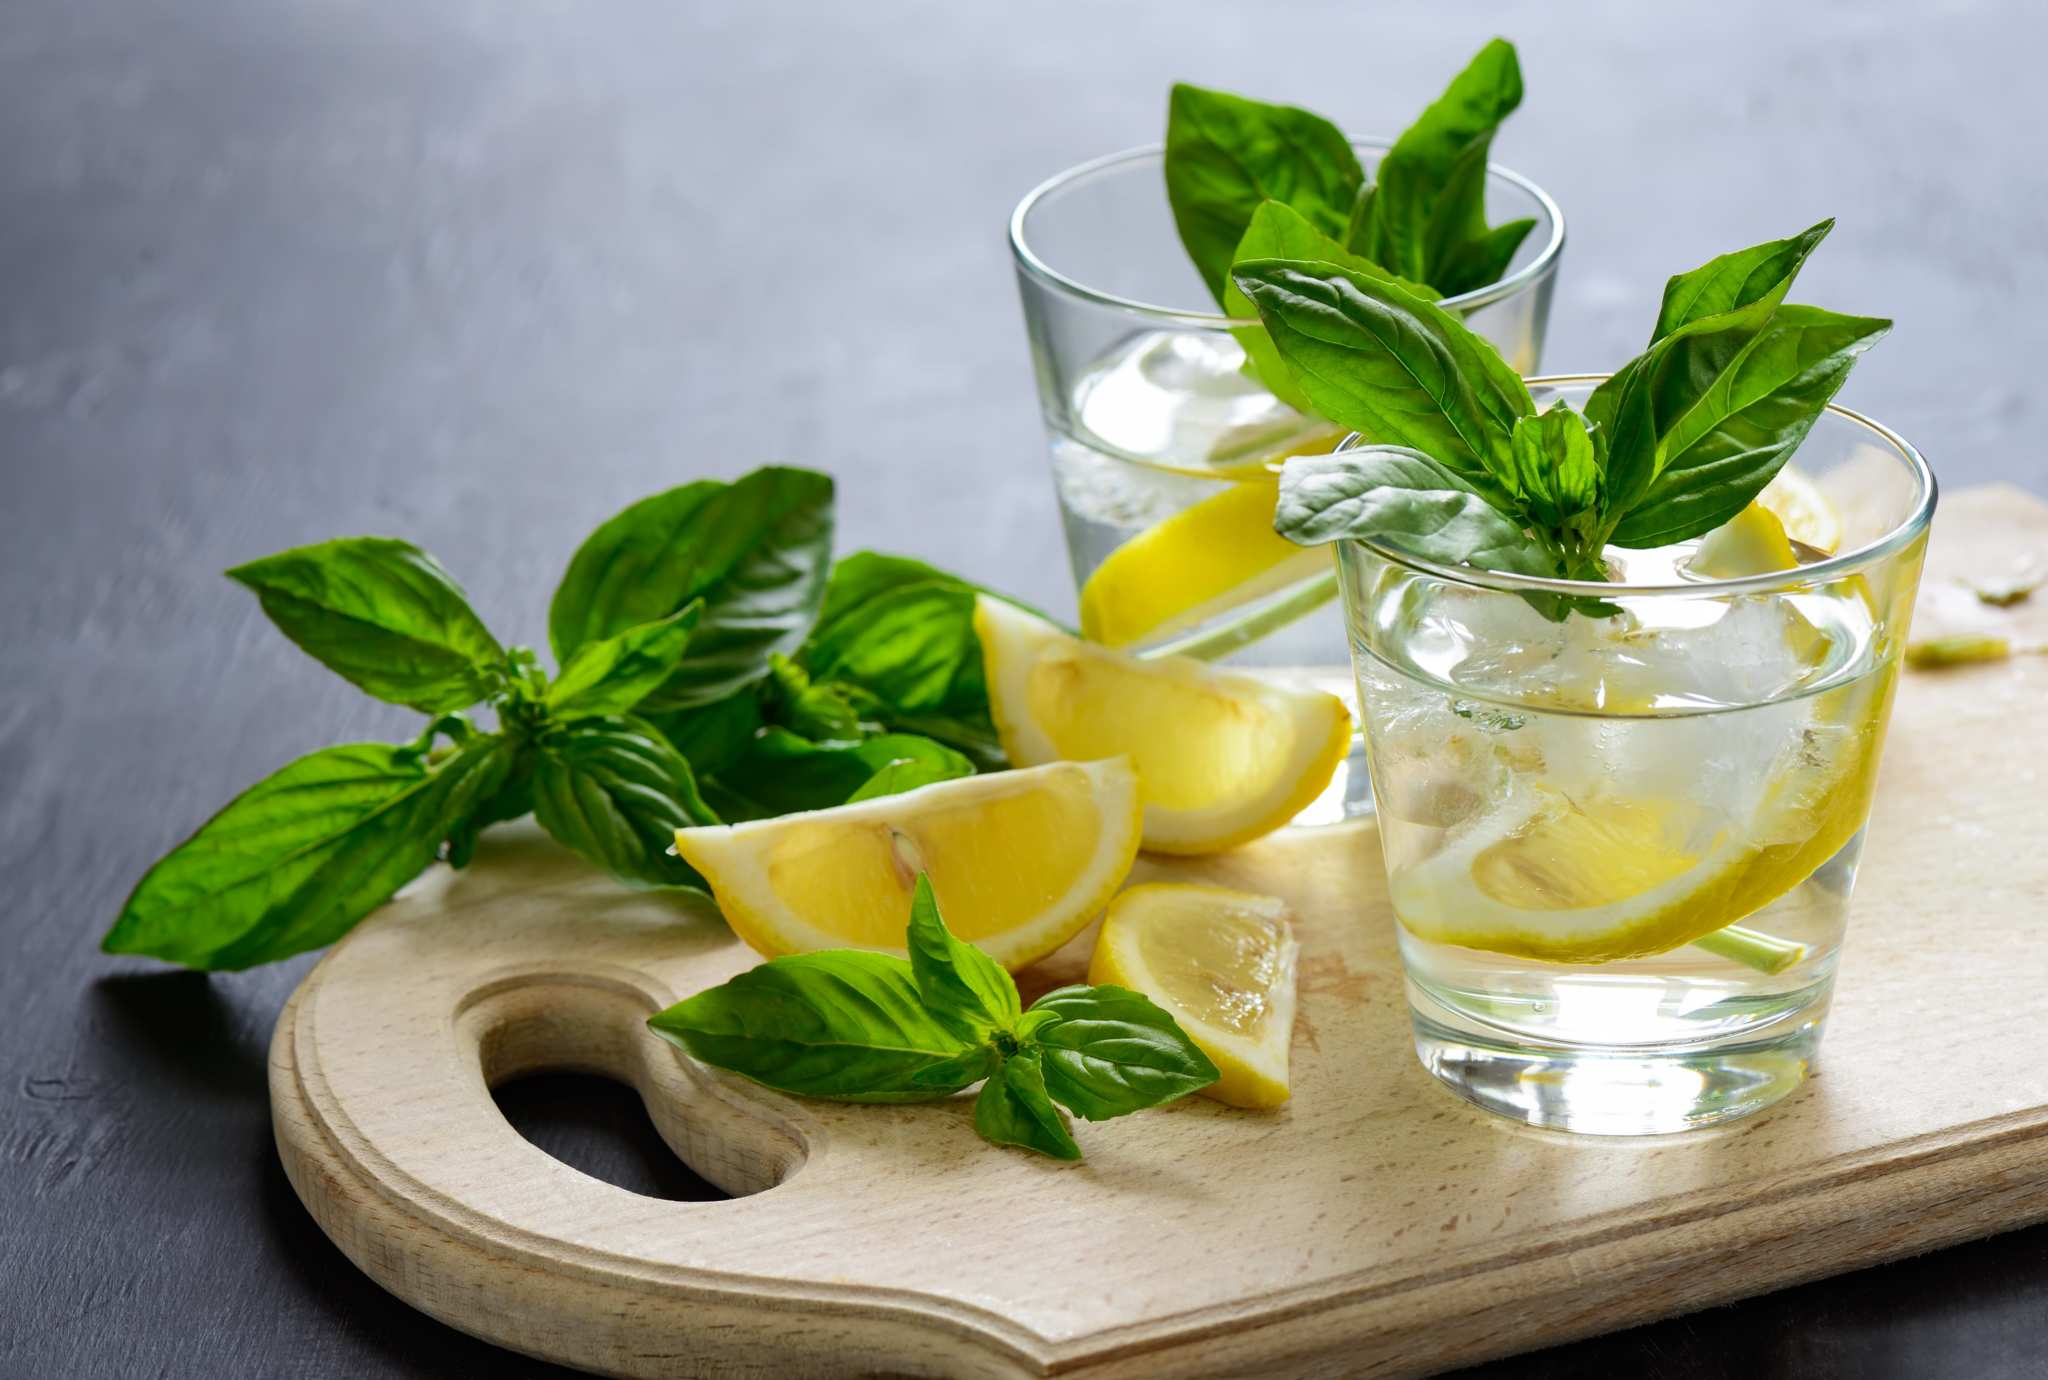 CBD drinks can help you unwind after a long day. A cutting board with lemons, basil and two lowball glasses of basil lemonade.